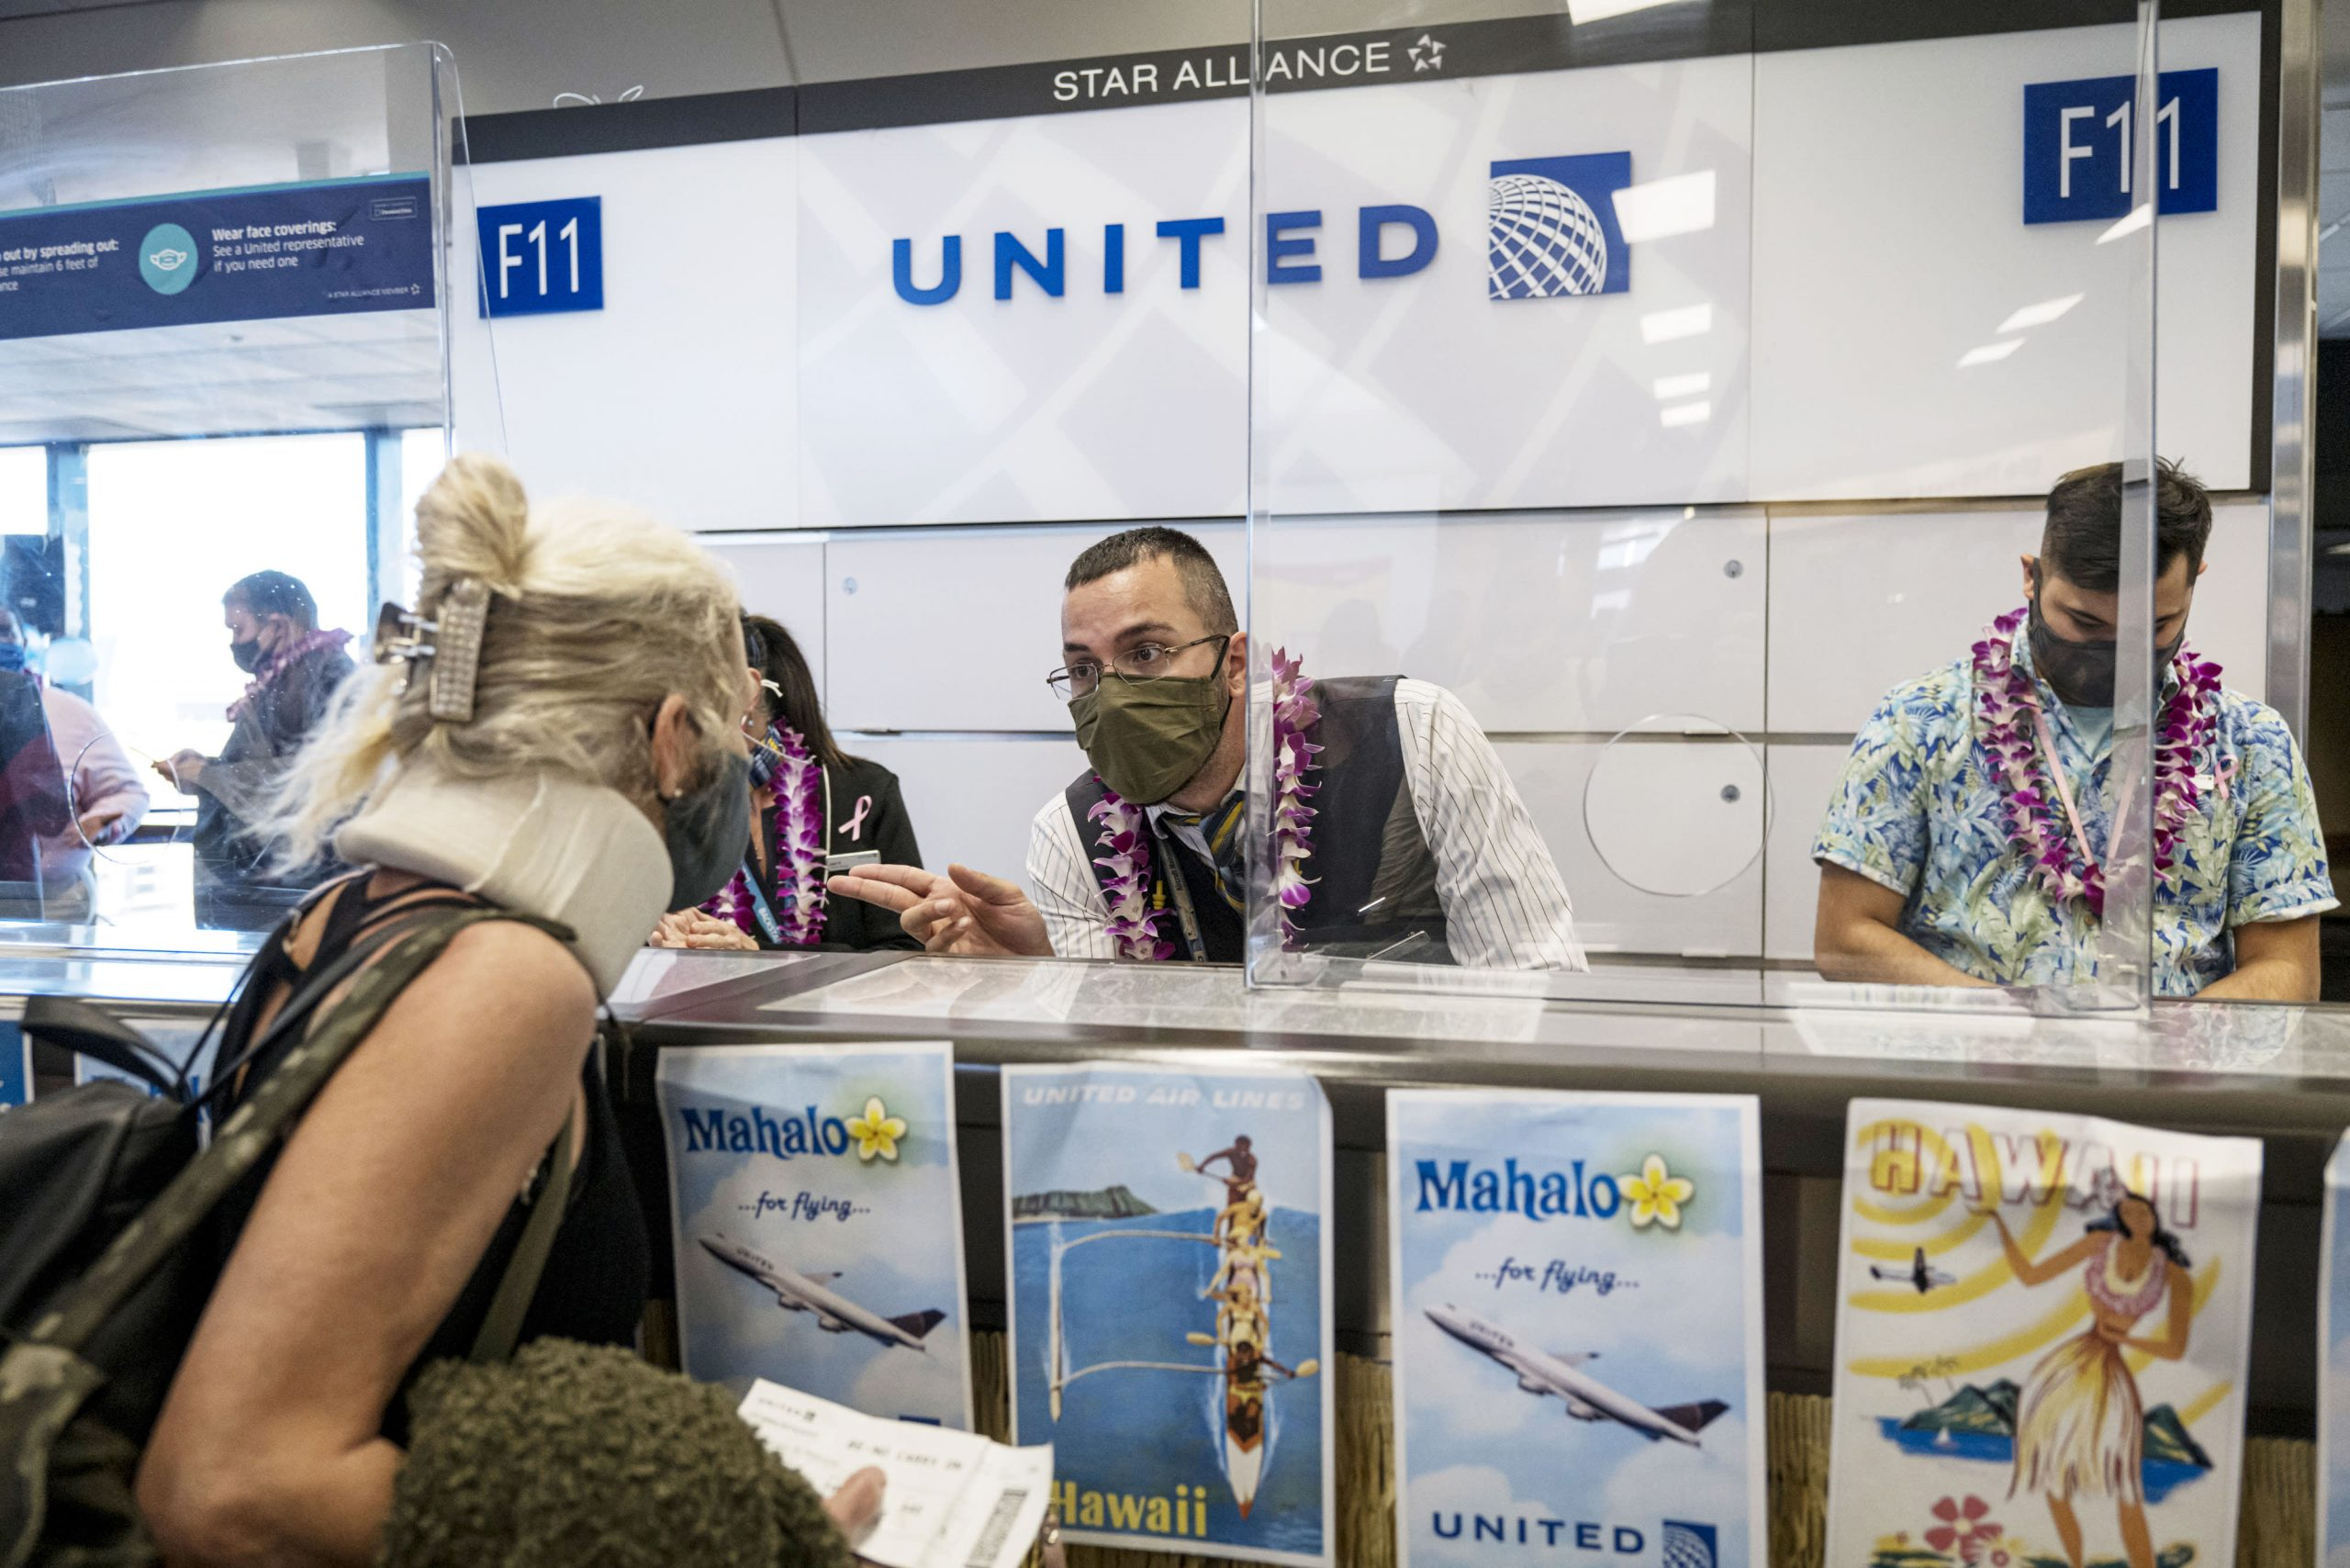 united-airlines-ceo-wants-to-make-covid-vaccines-mandatory-for-employees